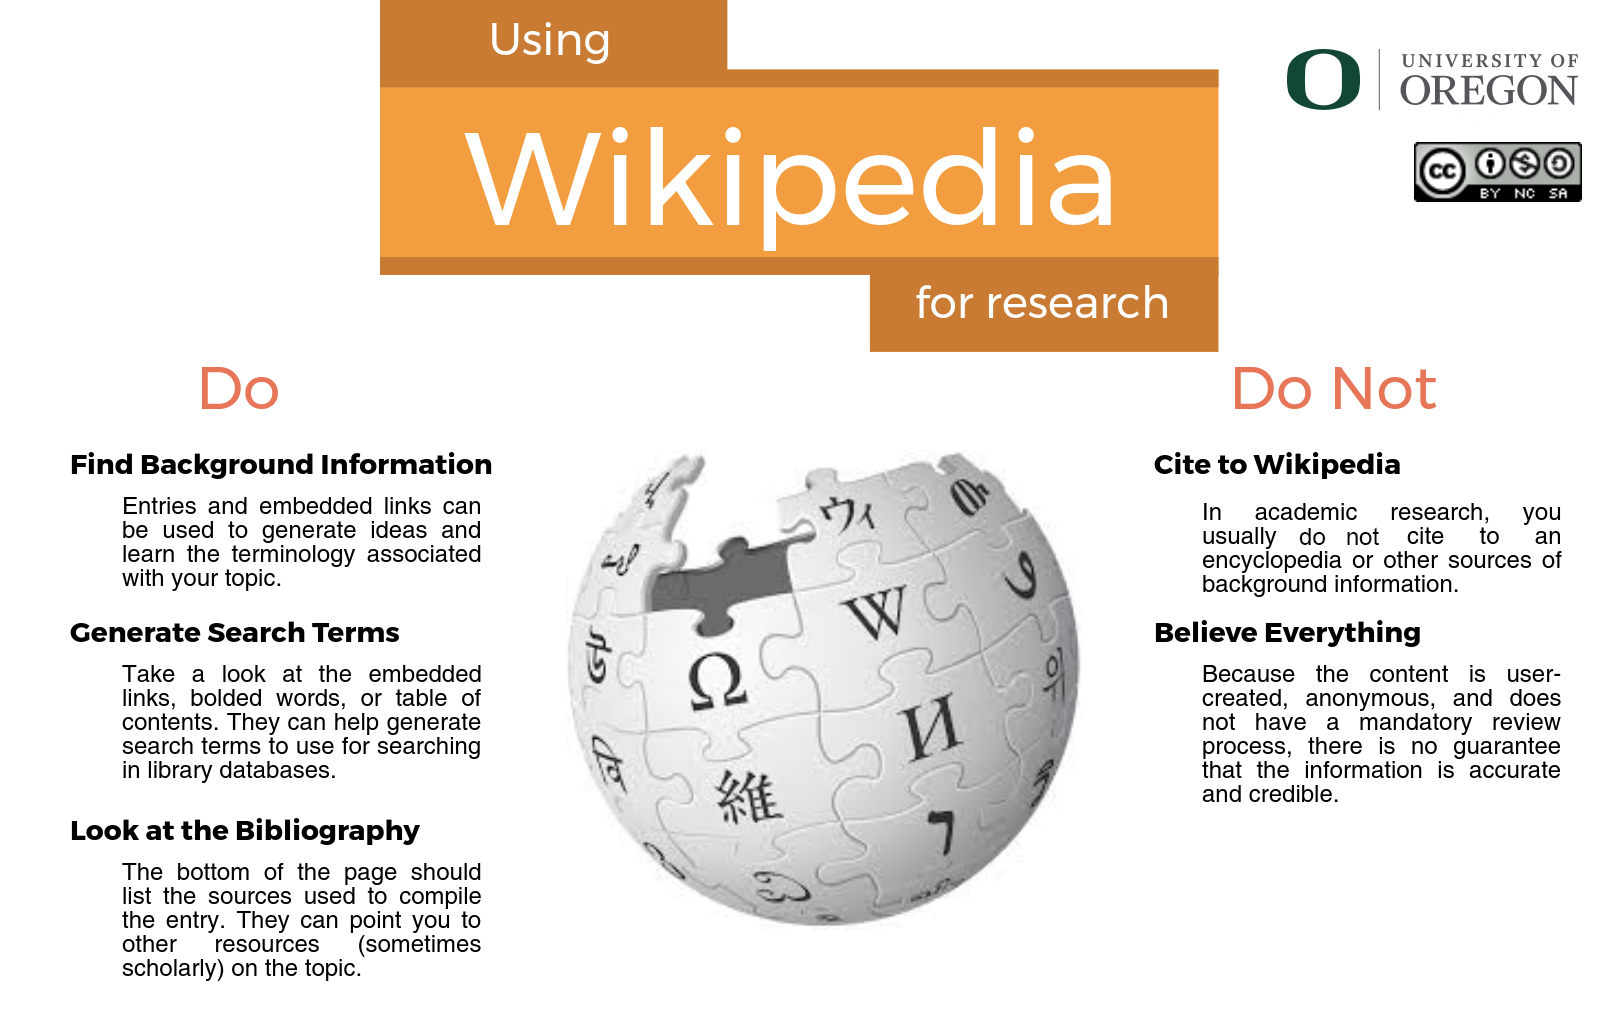 Infographic about using Wikipedia for research